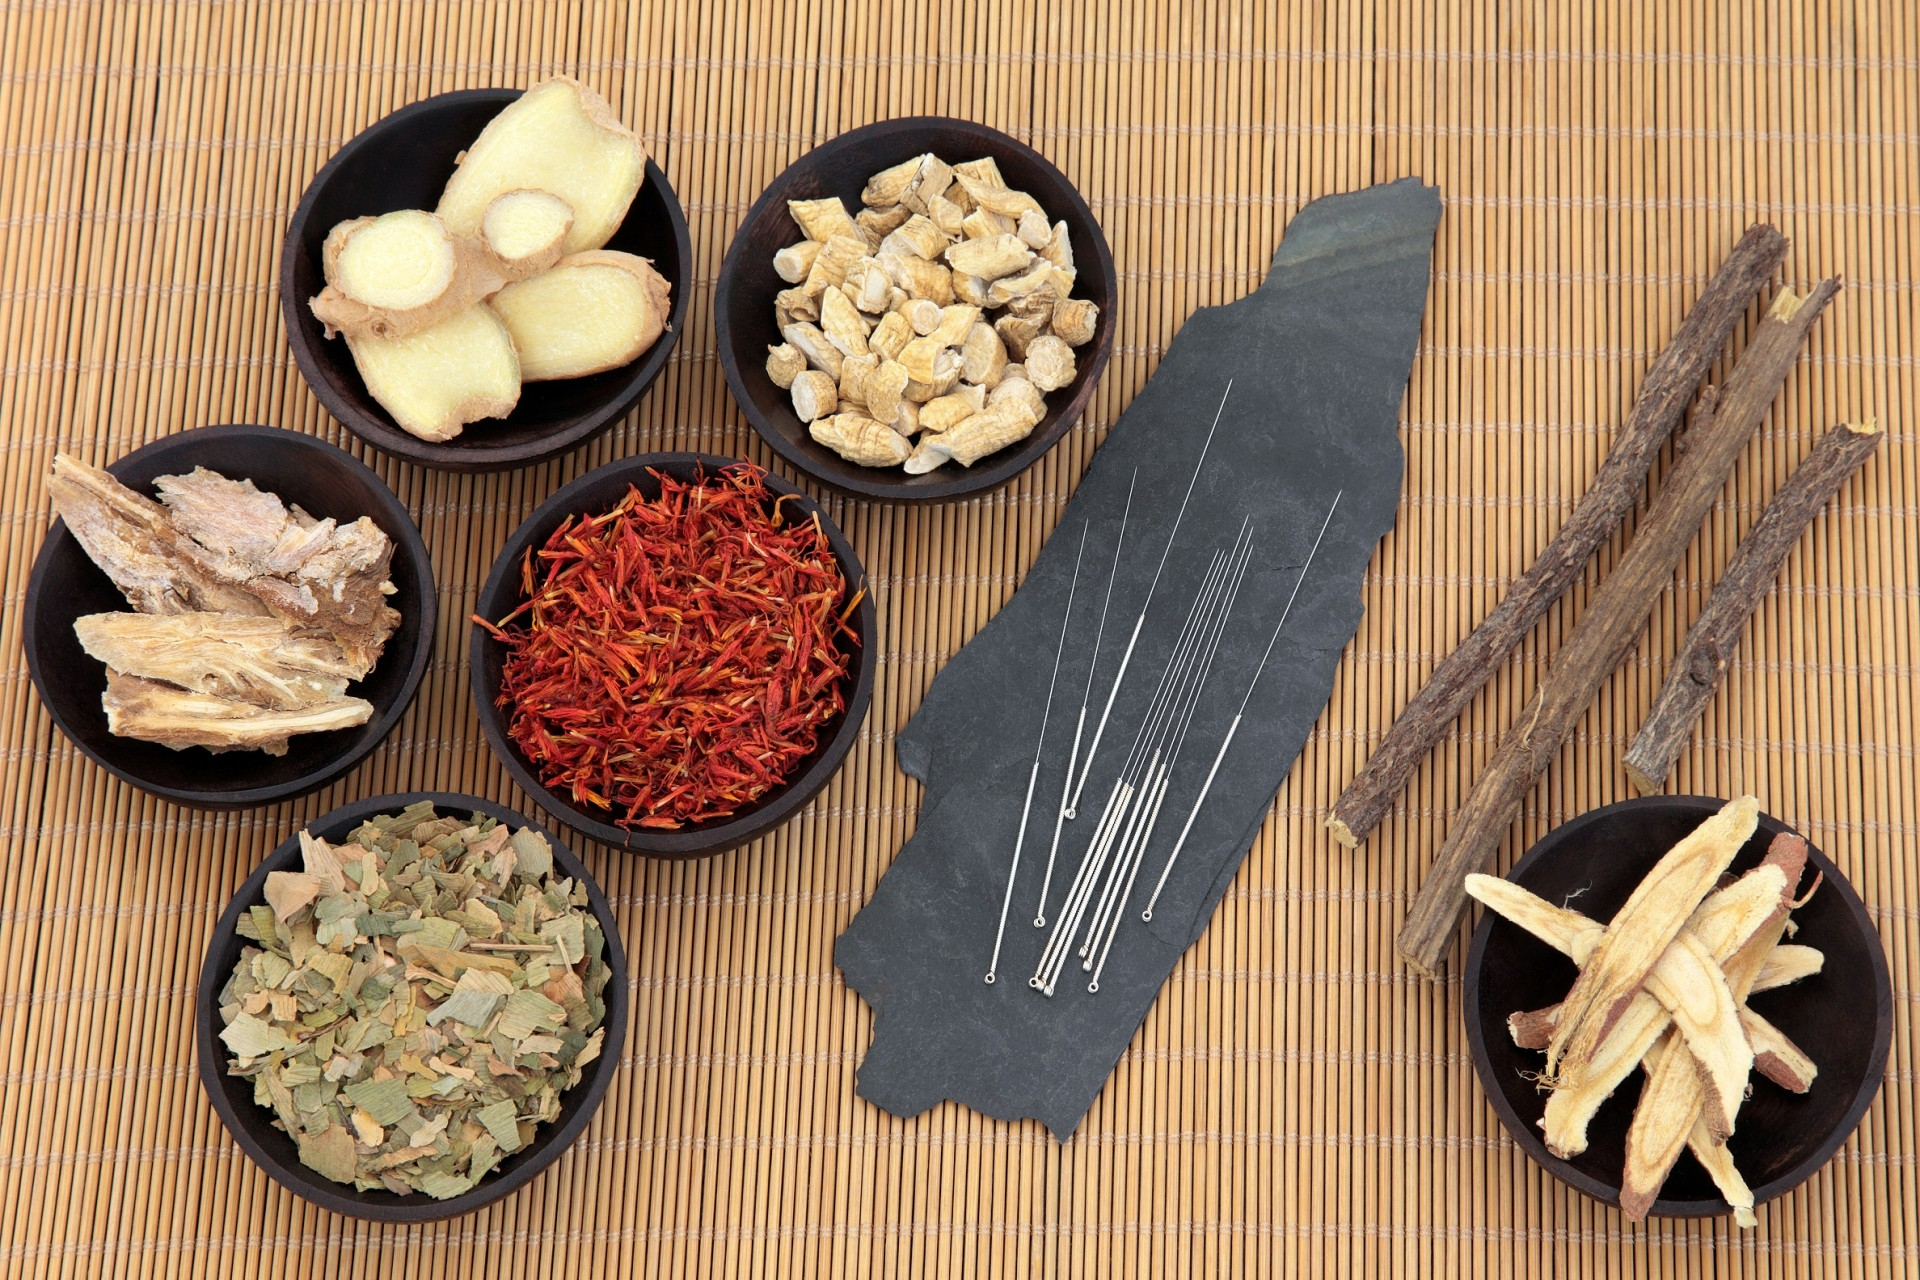 acupuncture_chinese_medicine_herbs_tcm_clinic_london_acumedic_camdem-1920x1280.jpg